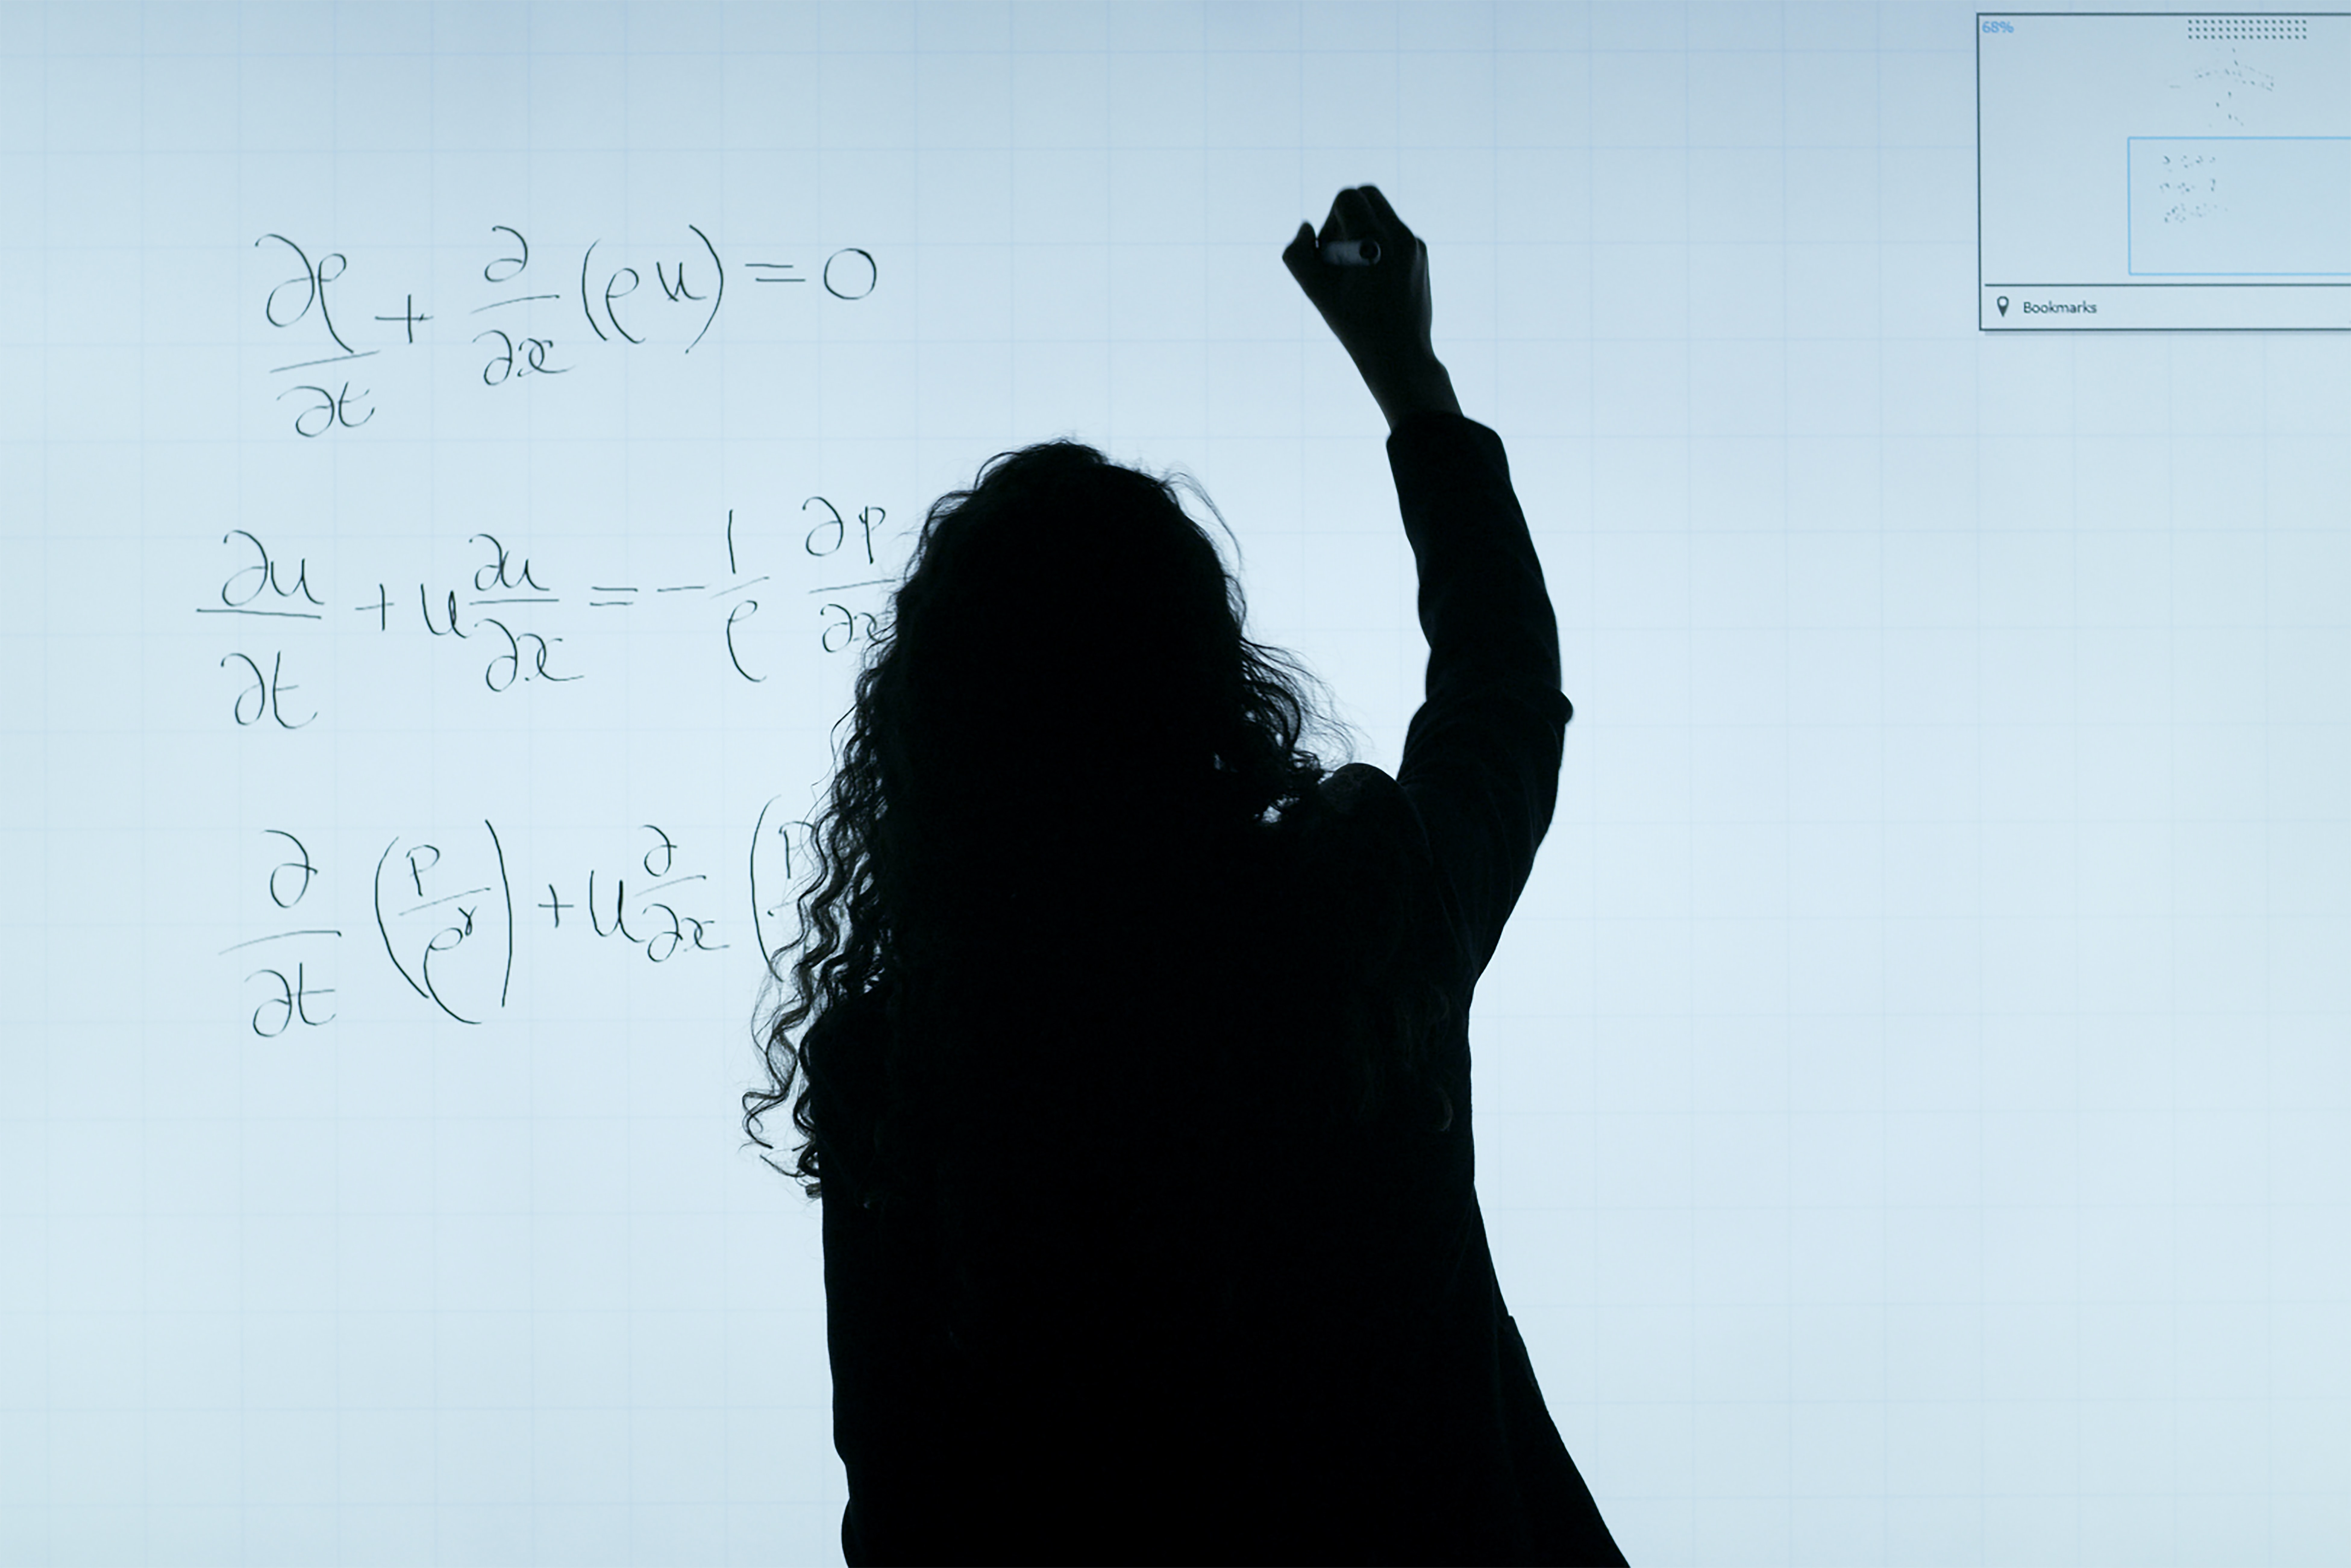 A black silhouette of a women writes a science formula on a whiteboard